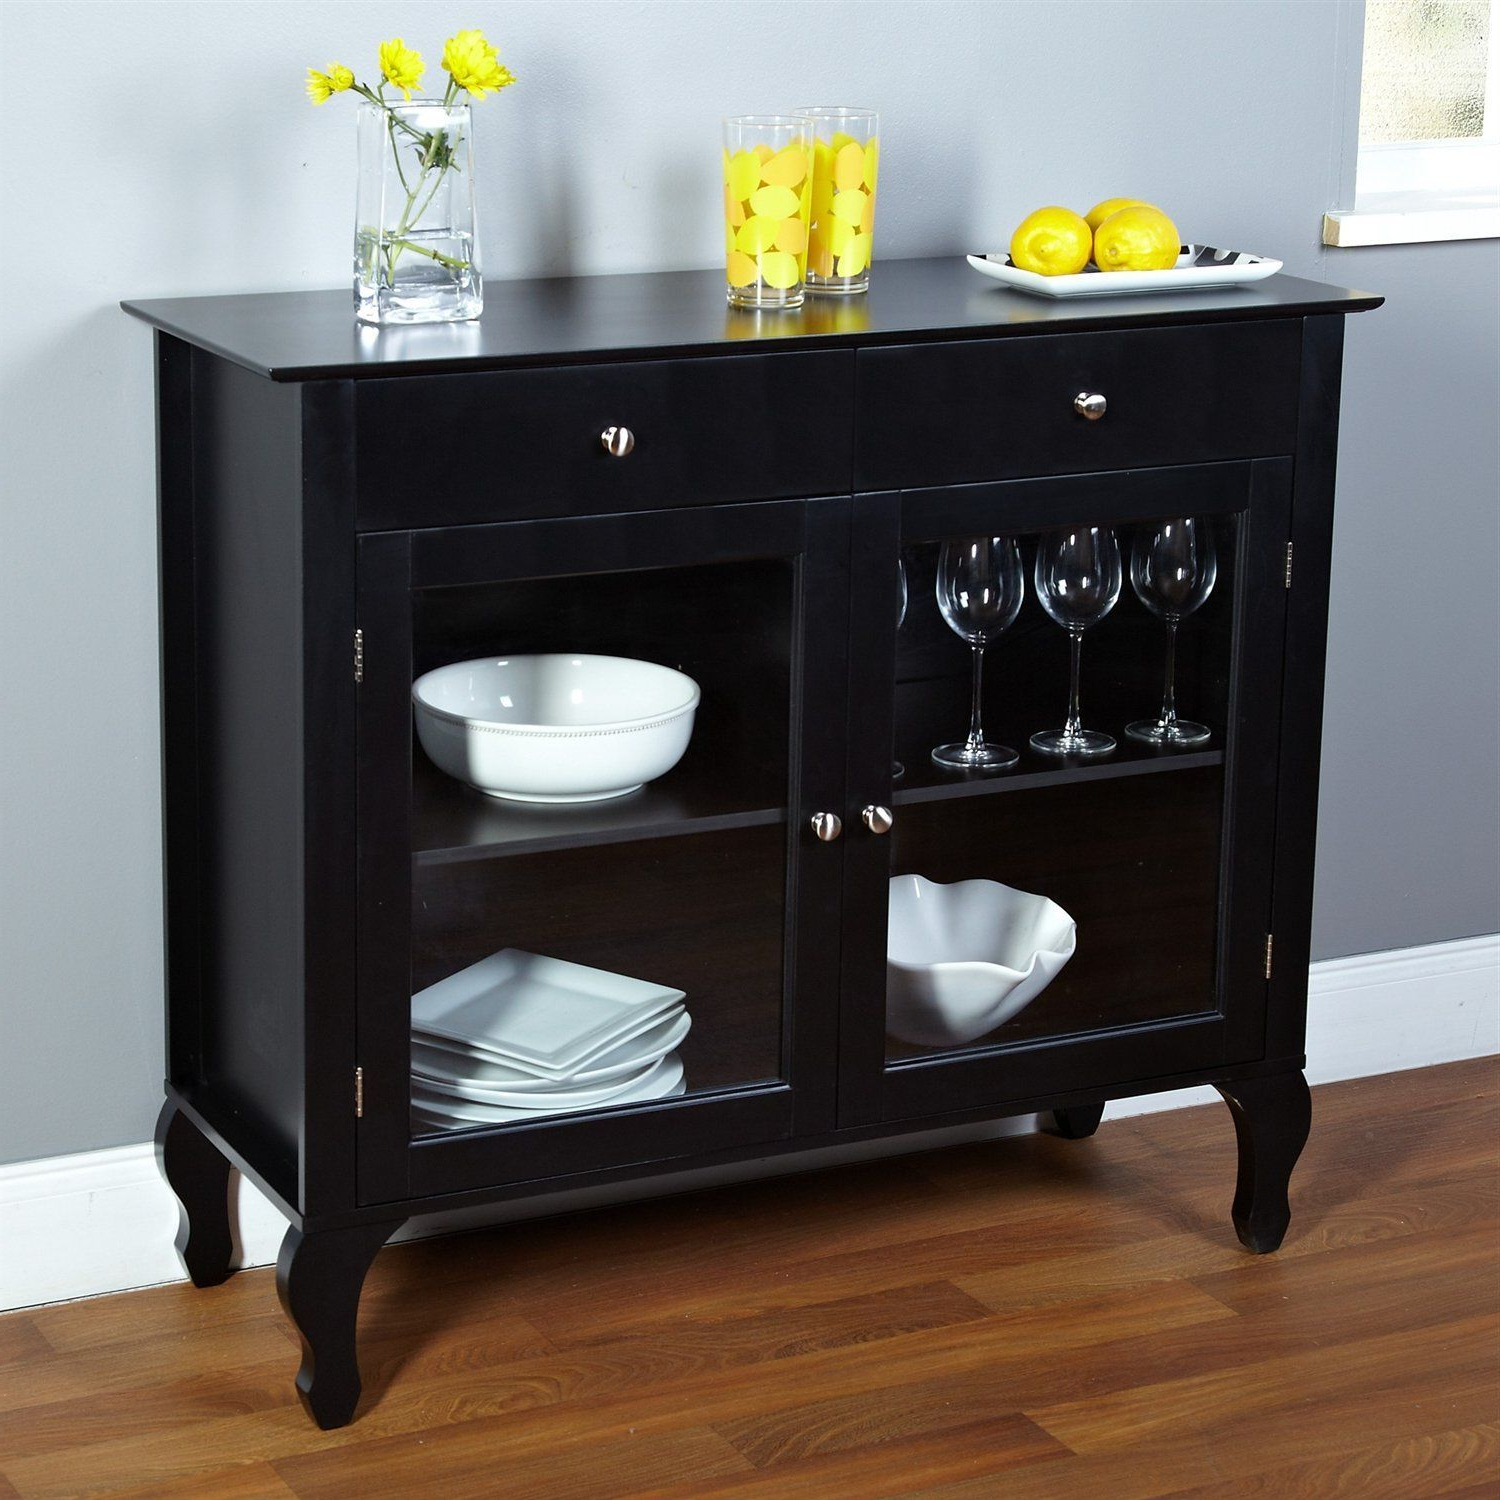 Black Dining Room Buffet Sideboard Server Cabinet With Glass Pertaining To Simple Living Montego Black Wooden Buffets (View 16 of 20)